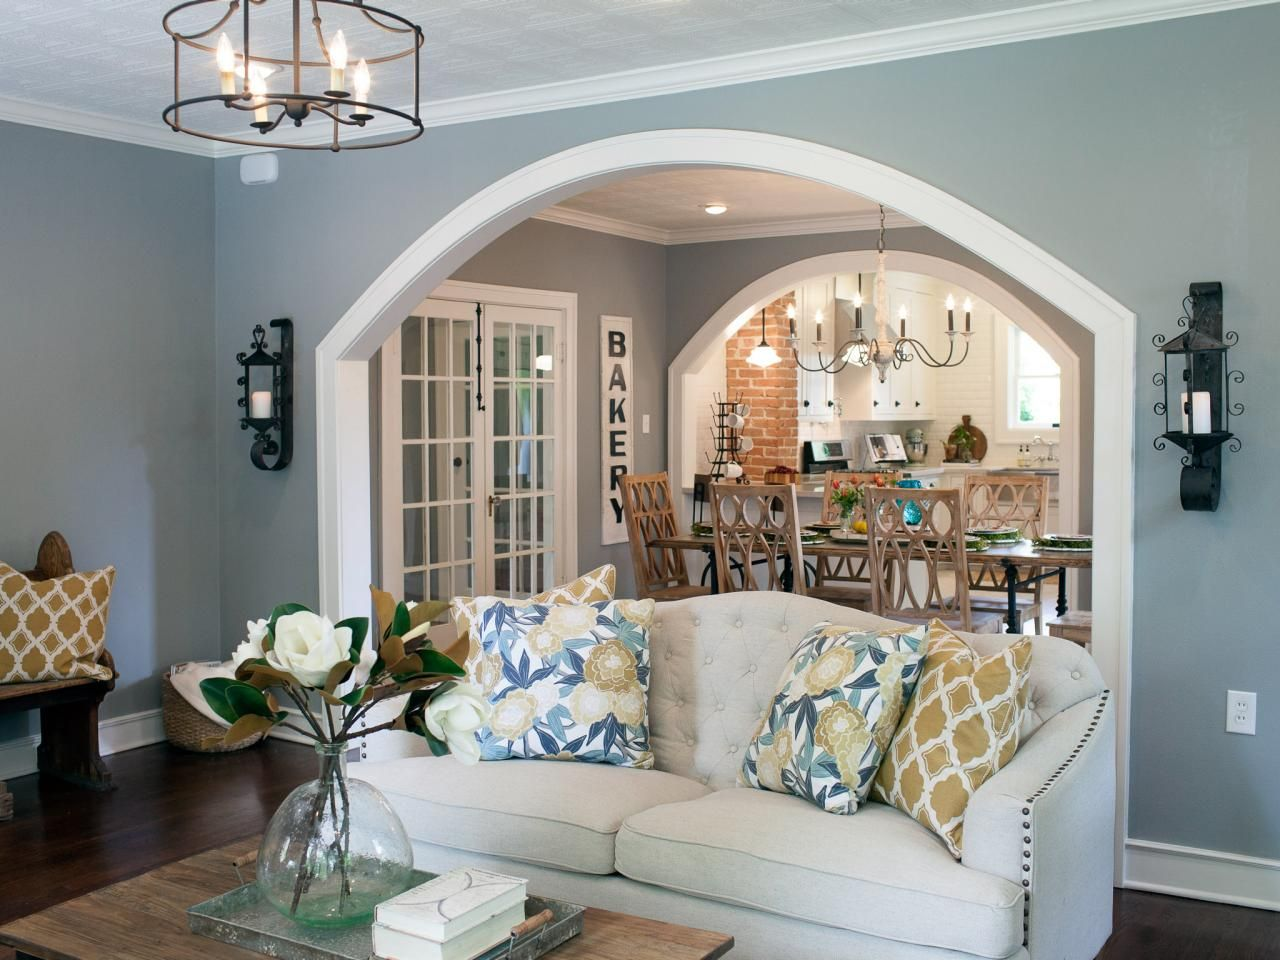 Photos Hgtv S Fixer Upper With Chip And Joanna Gaines Blue Living Room Walls